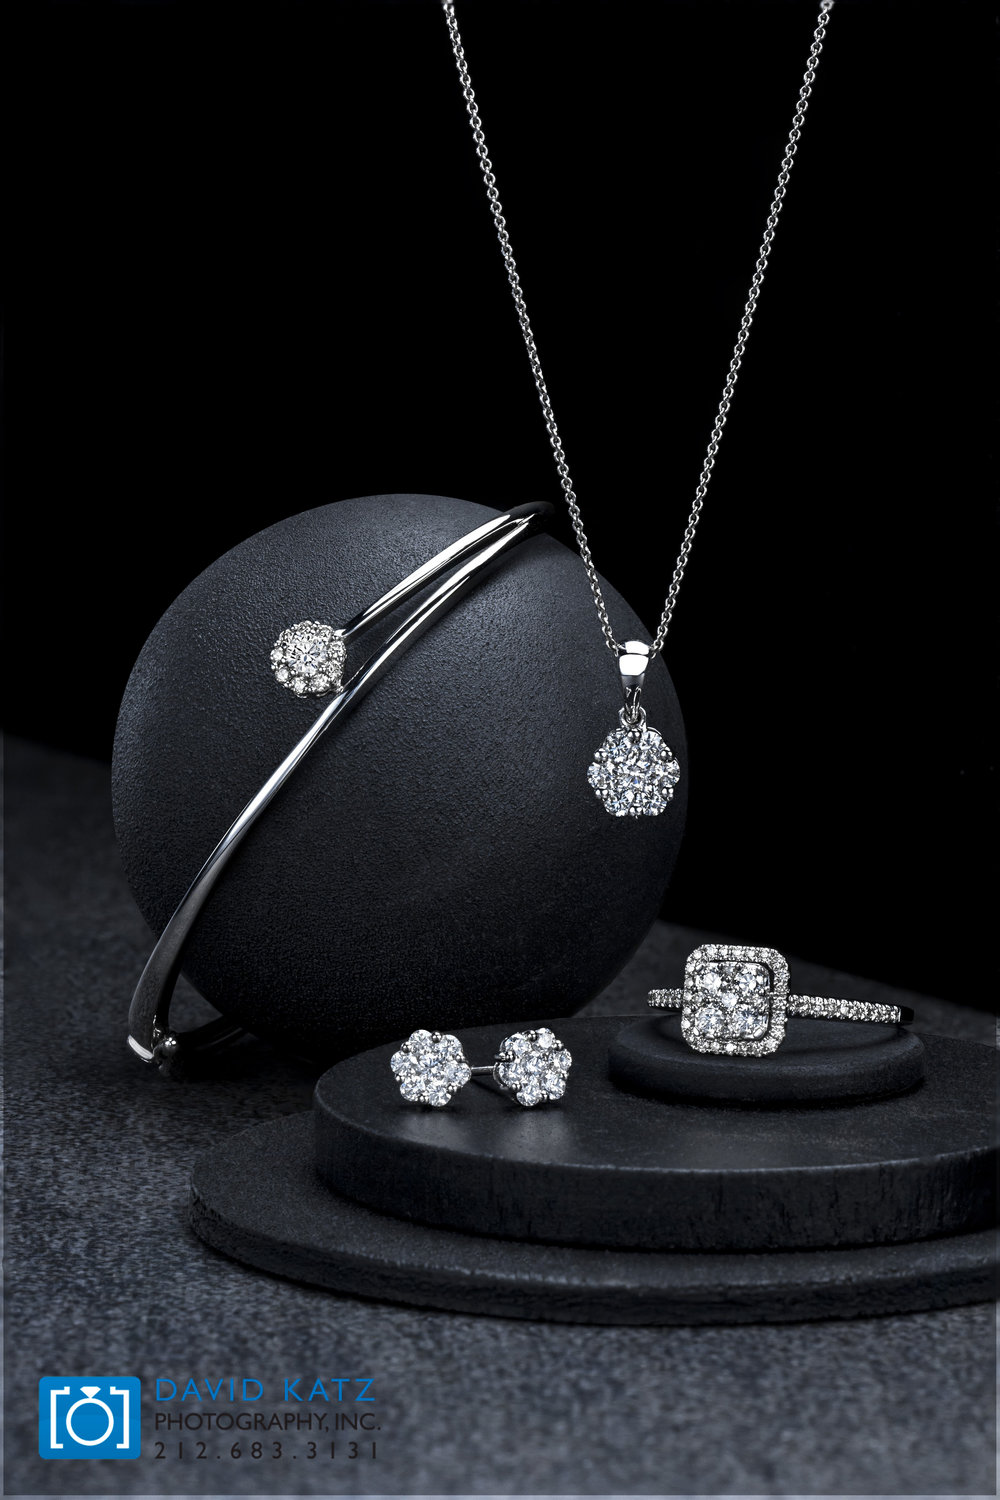 Jewelry Lifestyle Group on Stone and Balls.jpg